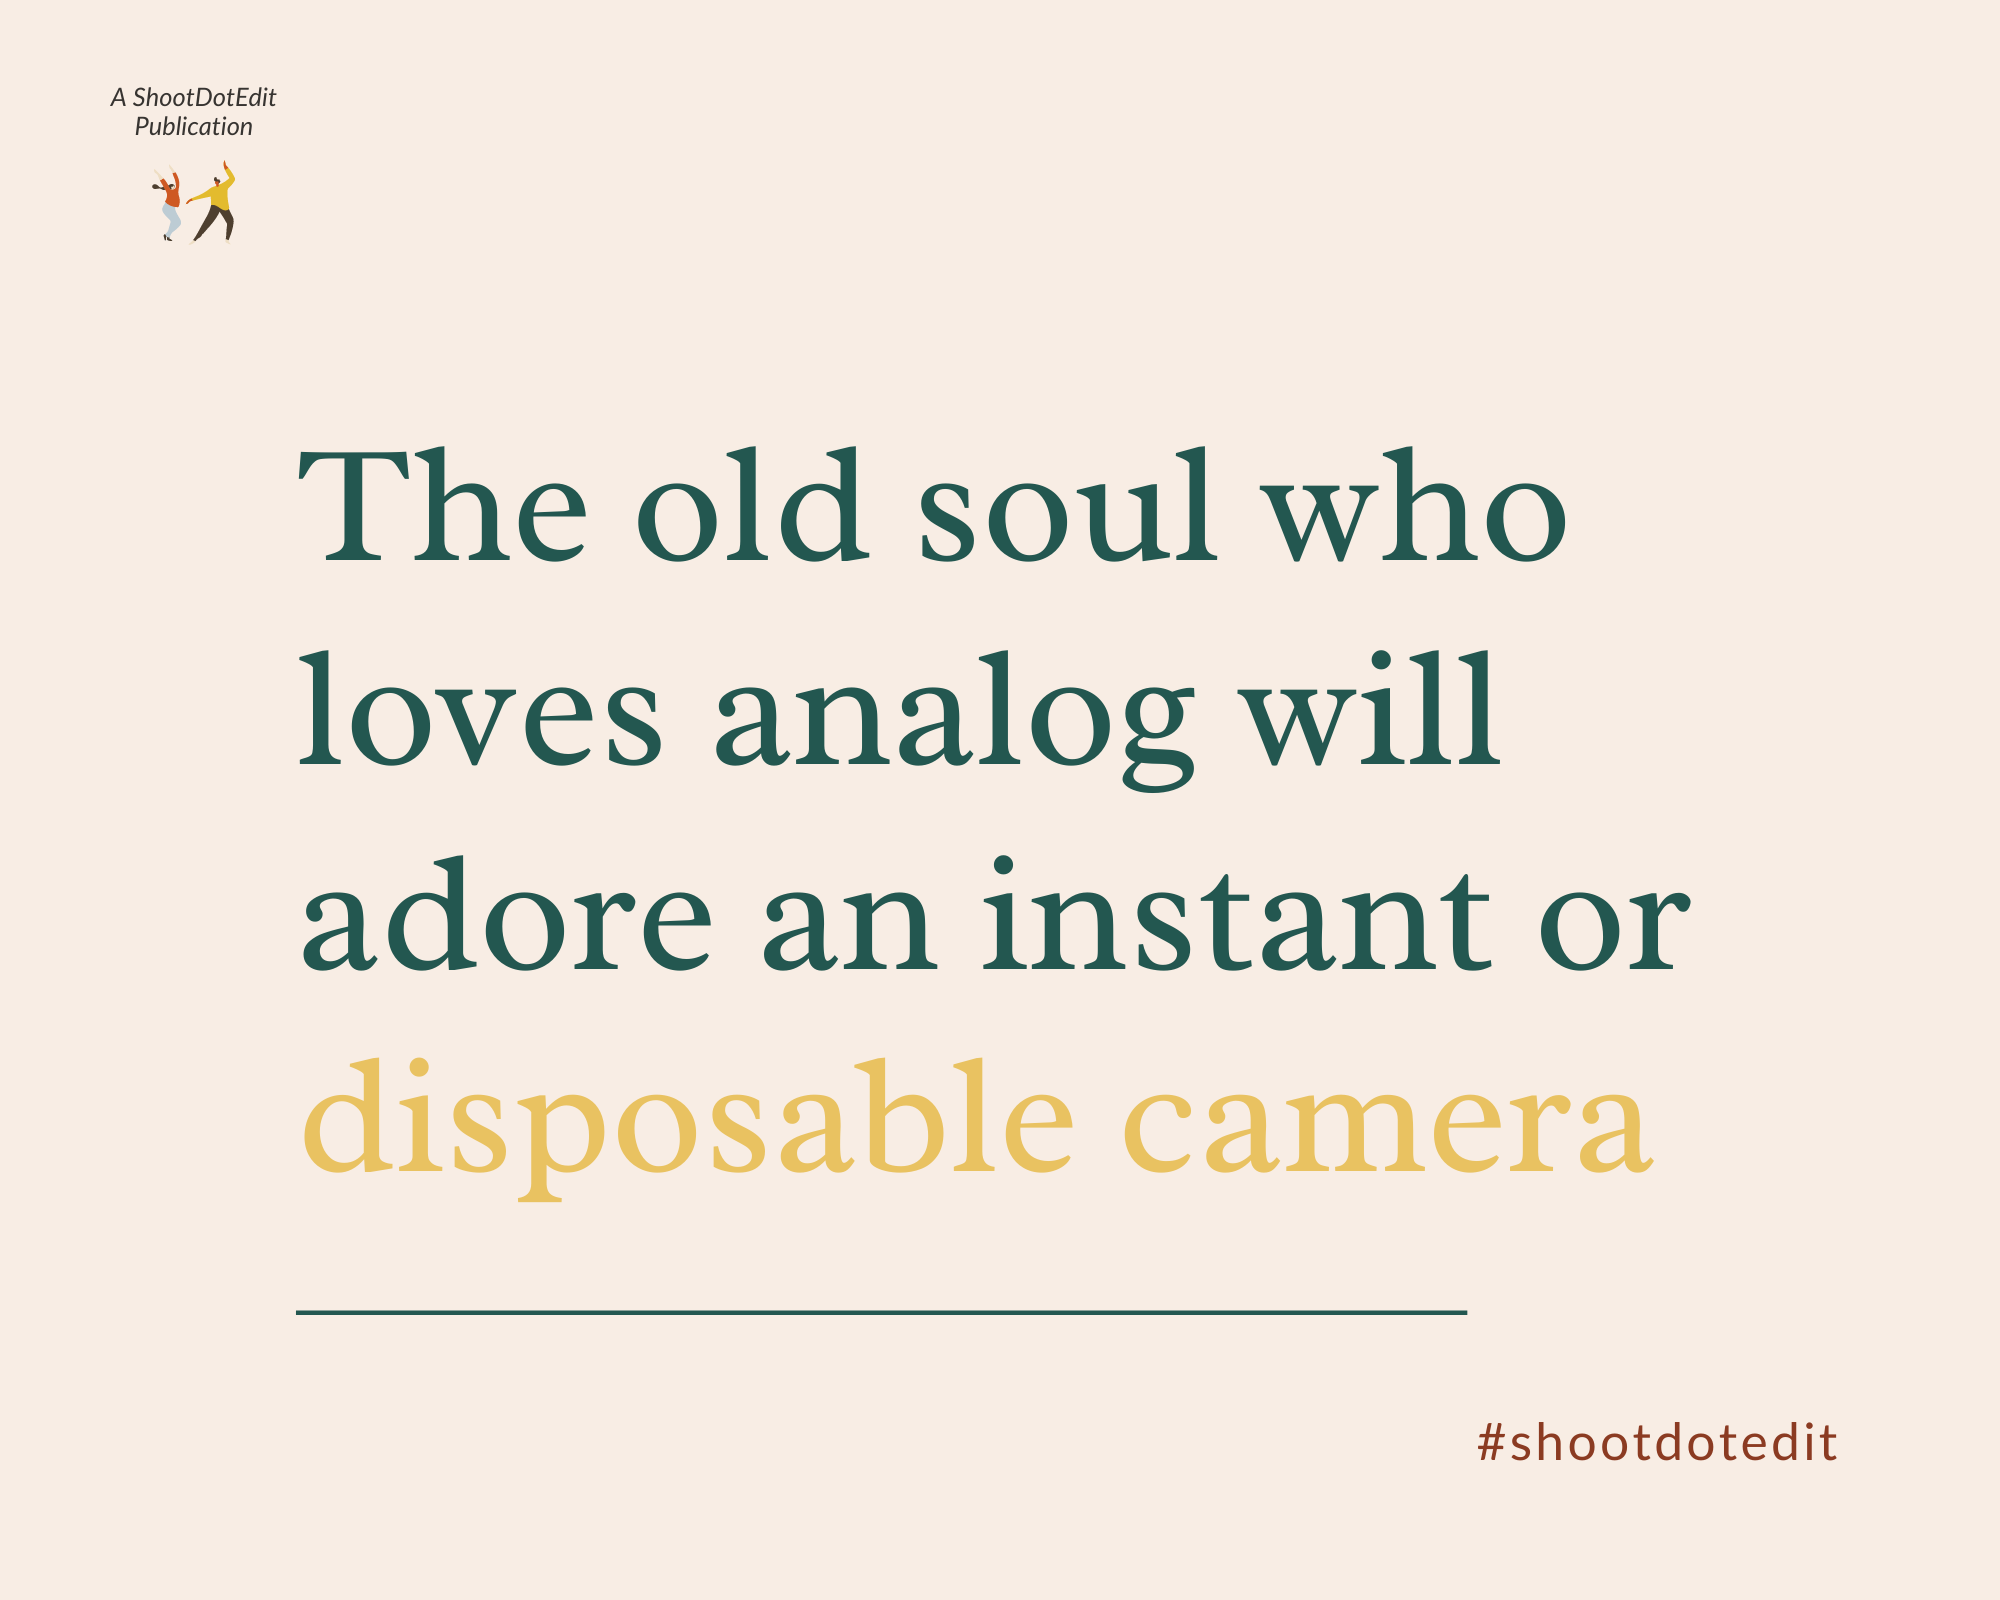 Infographic stating The old soul who loves analog will adore an instant or disposable camera